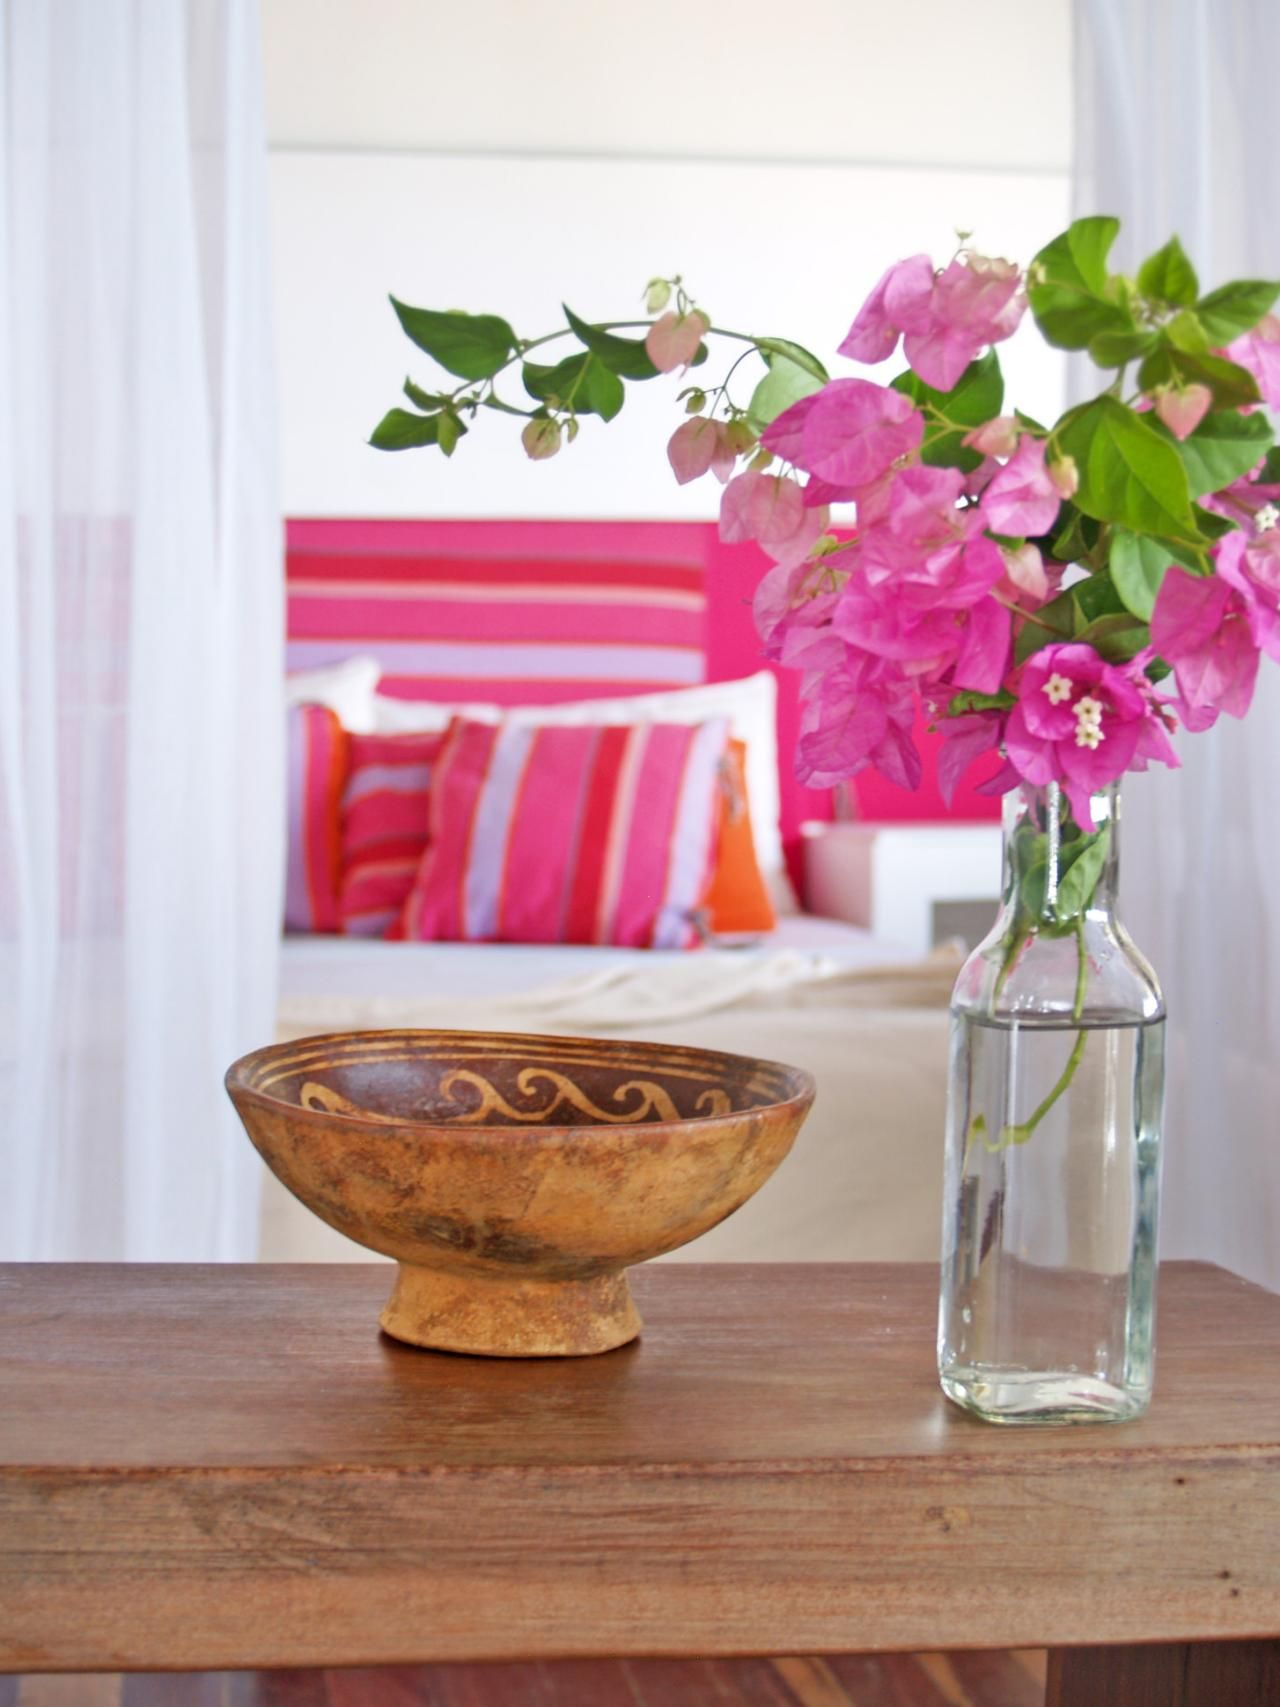 19 feng shui secrets to attract love and money apartment living rh pinterest com